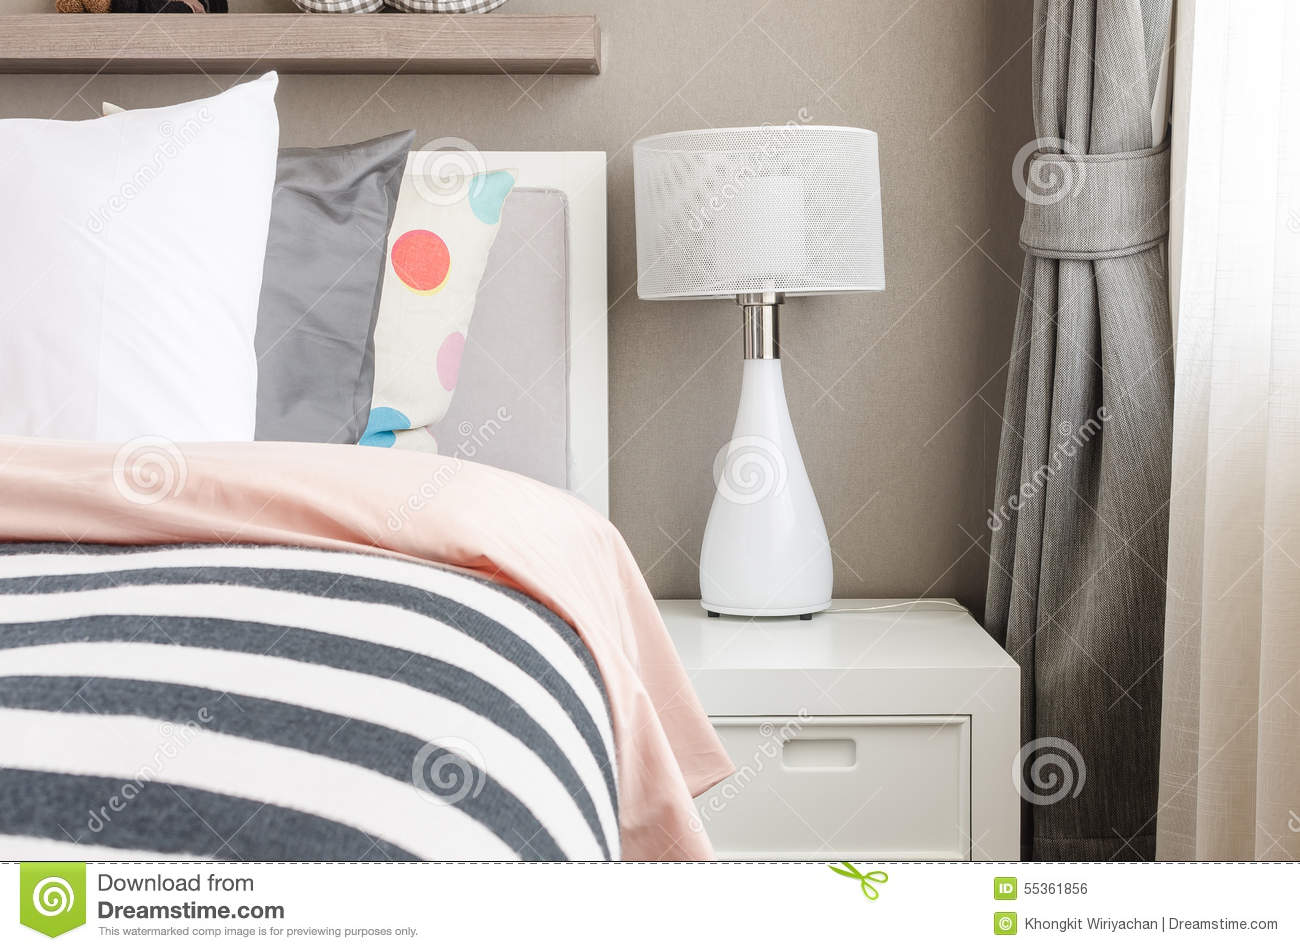 Lampadario design moderno camera da letto for Lampadario camera letto online